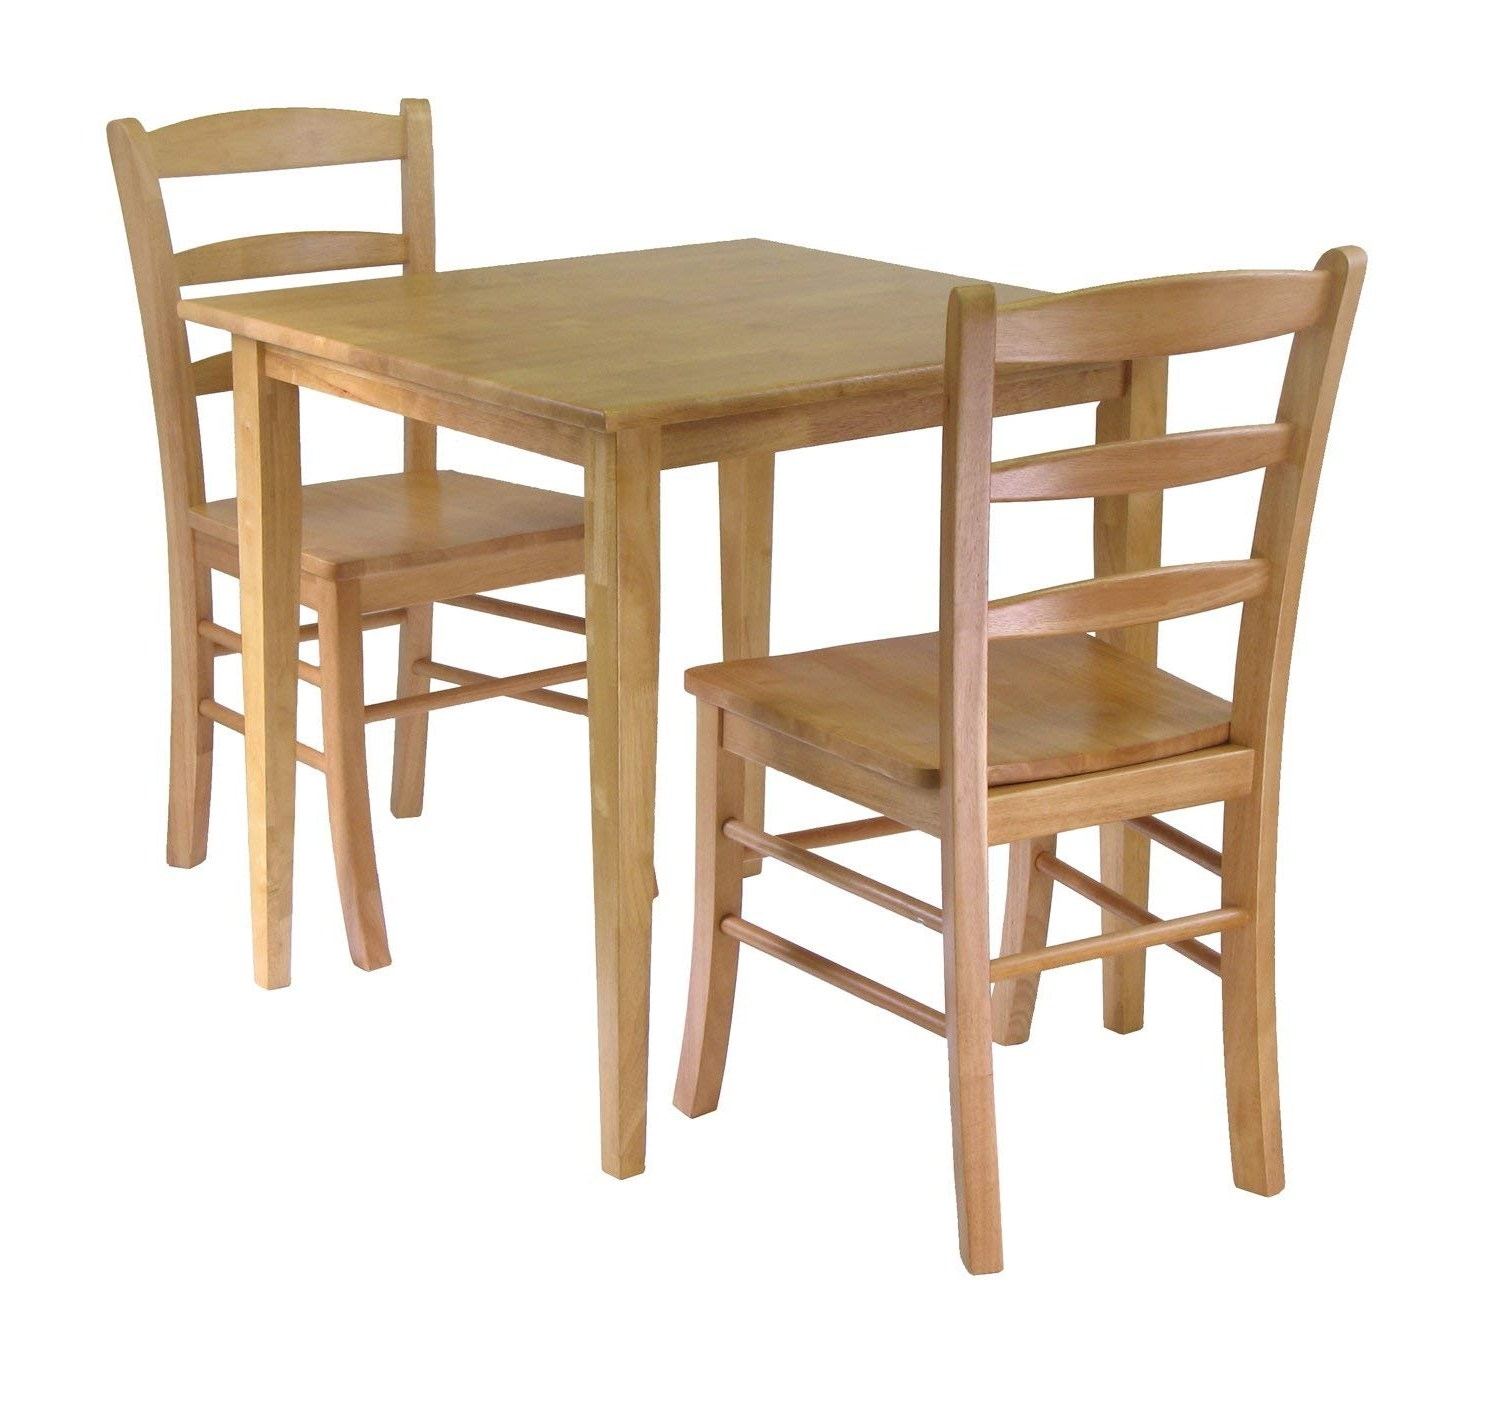 Amazon – Winsome Groveland 3 Piece Wood Dining Set, Light Oak Regarding Most Up To Date Cheap Dining Tables Sets (View 5 of 25)